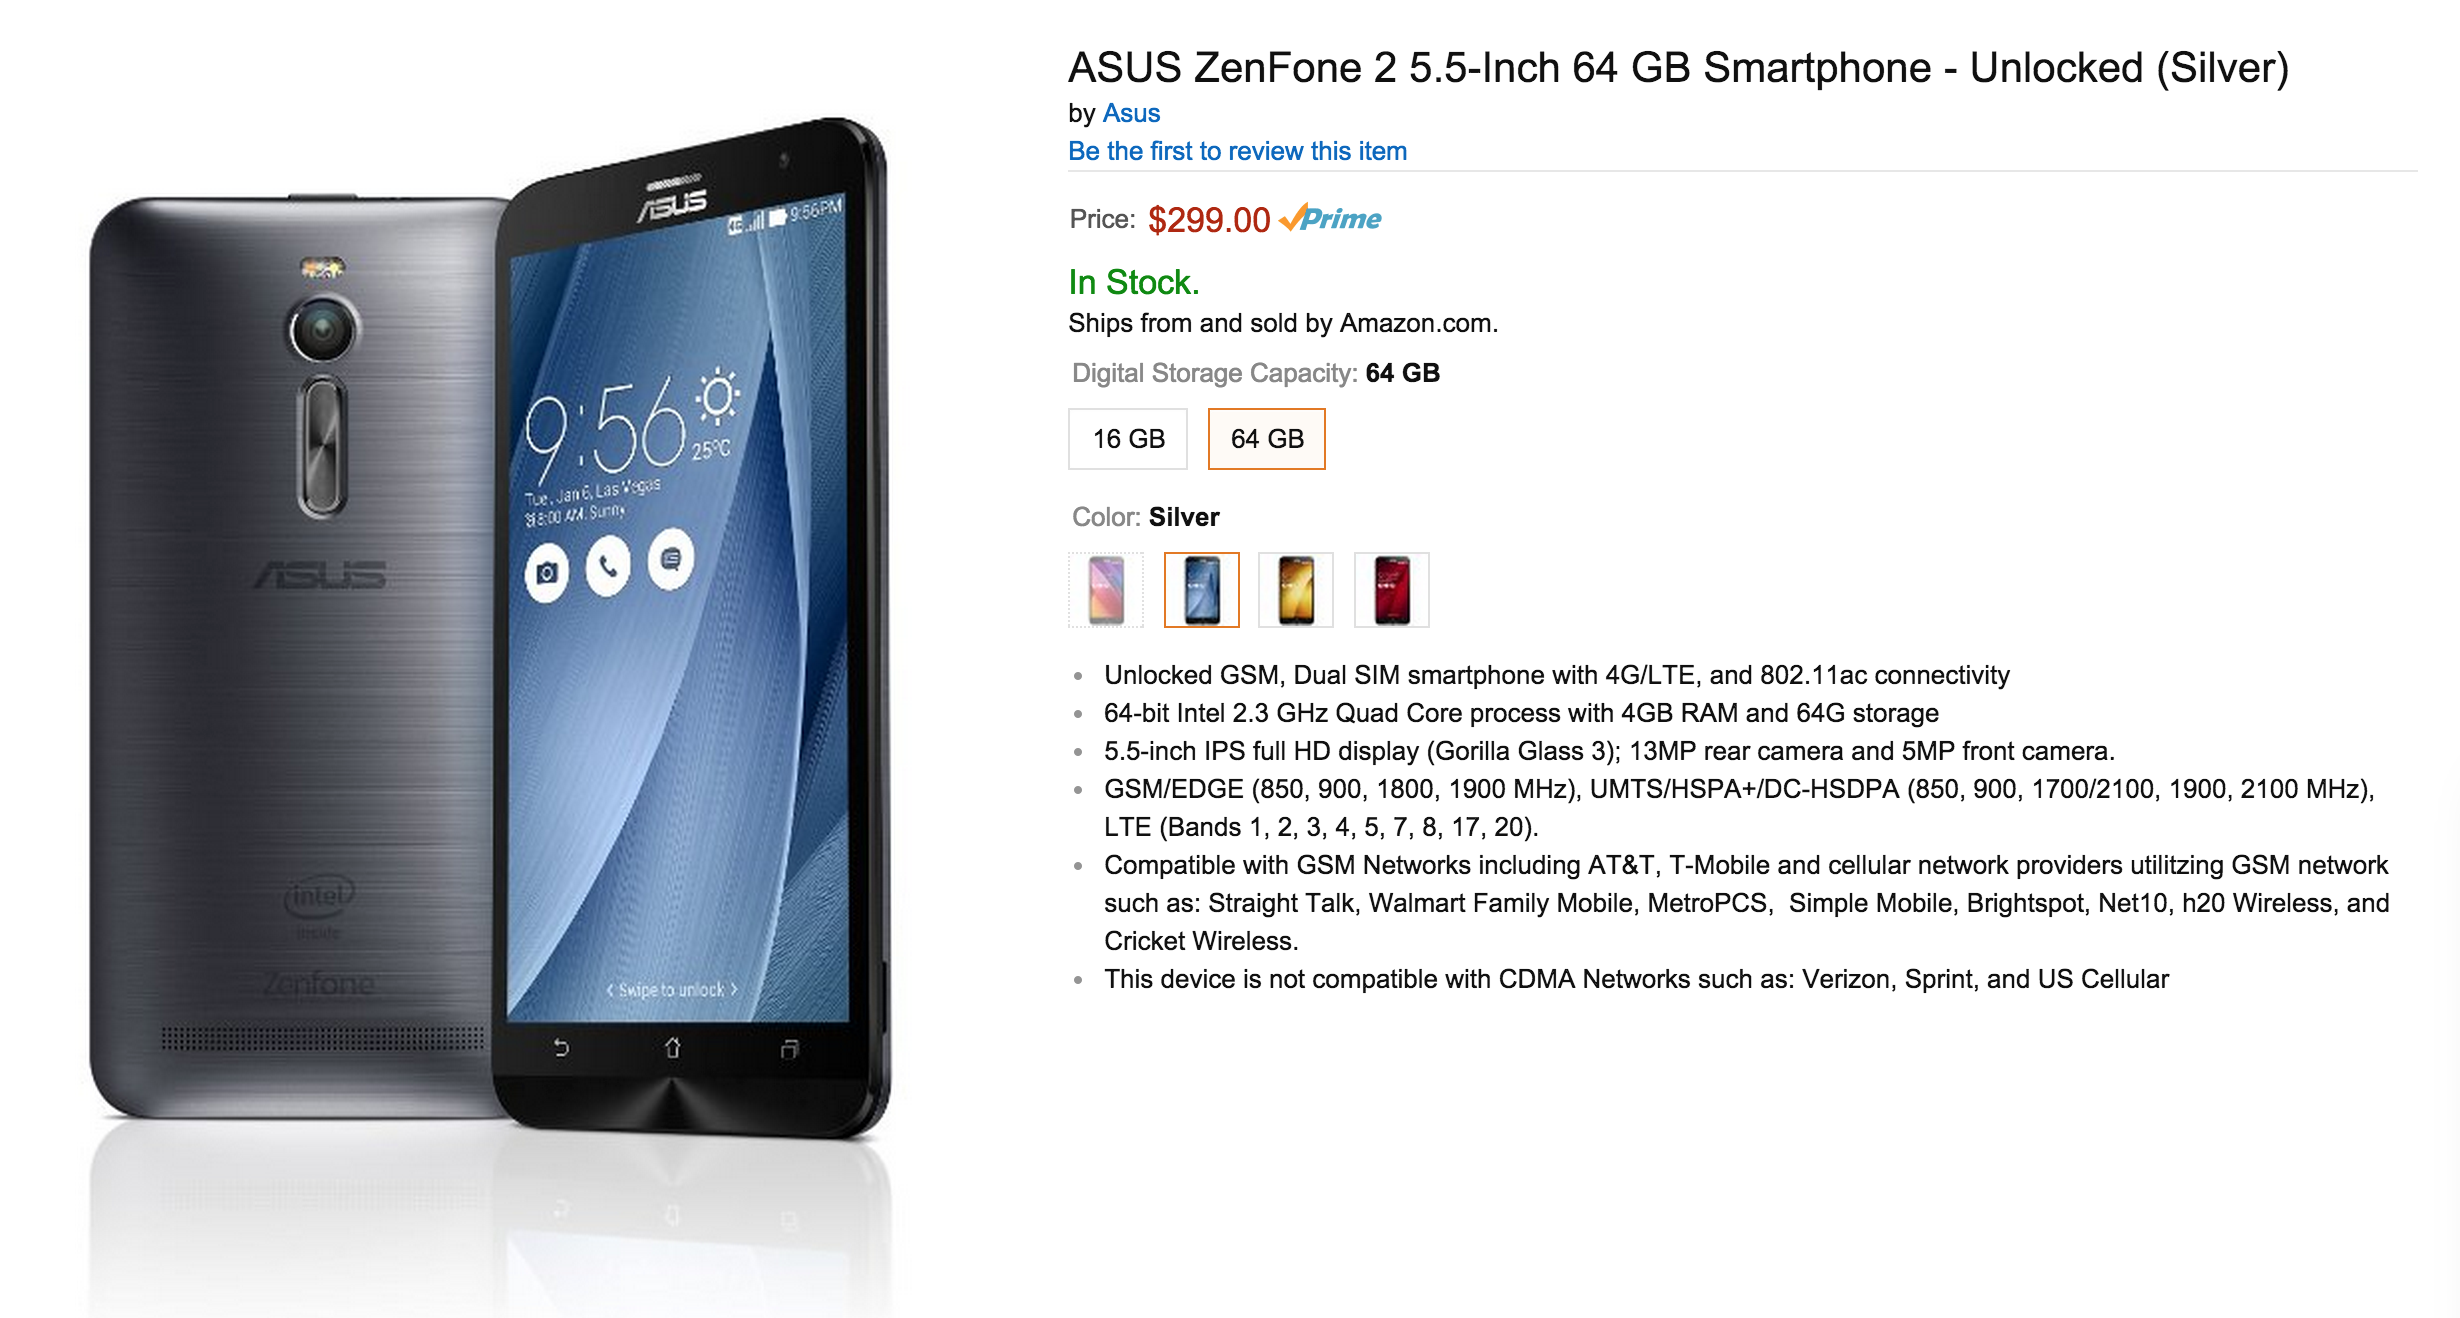 ASUS ZenFone 2 already available on Amazon for only $199